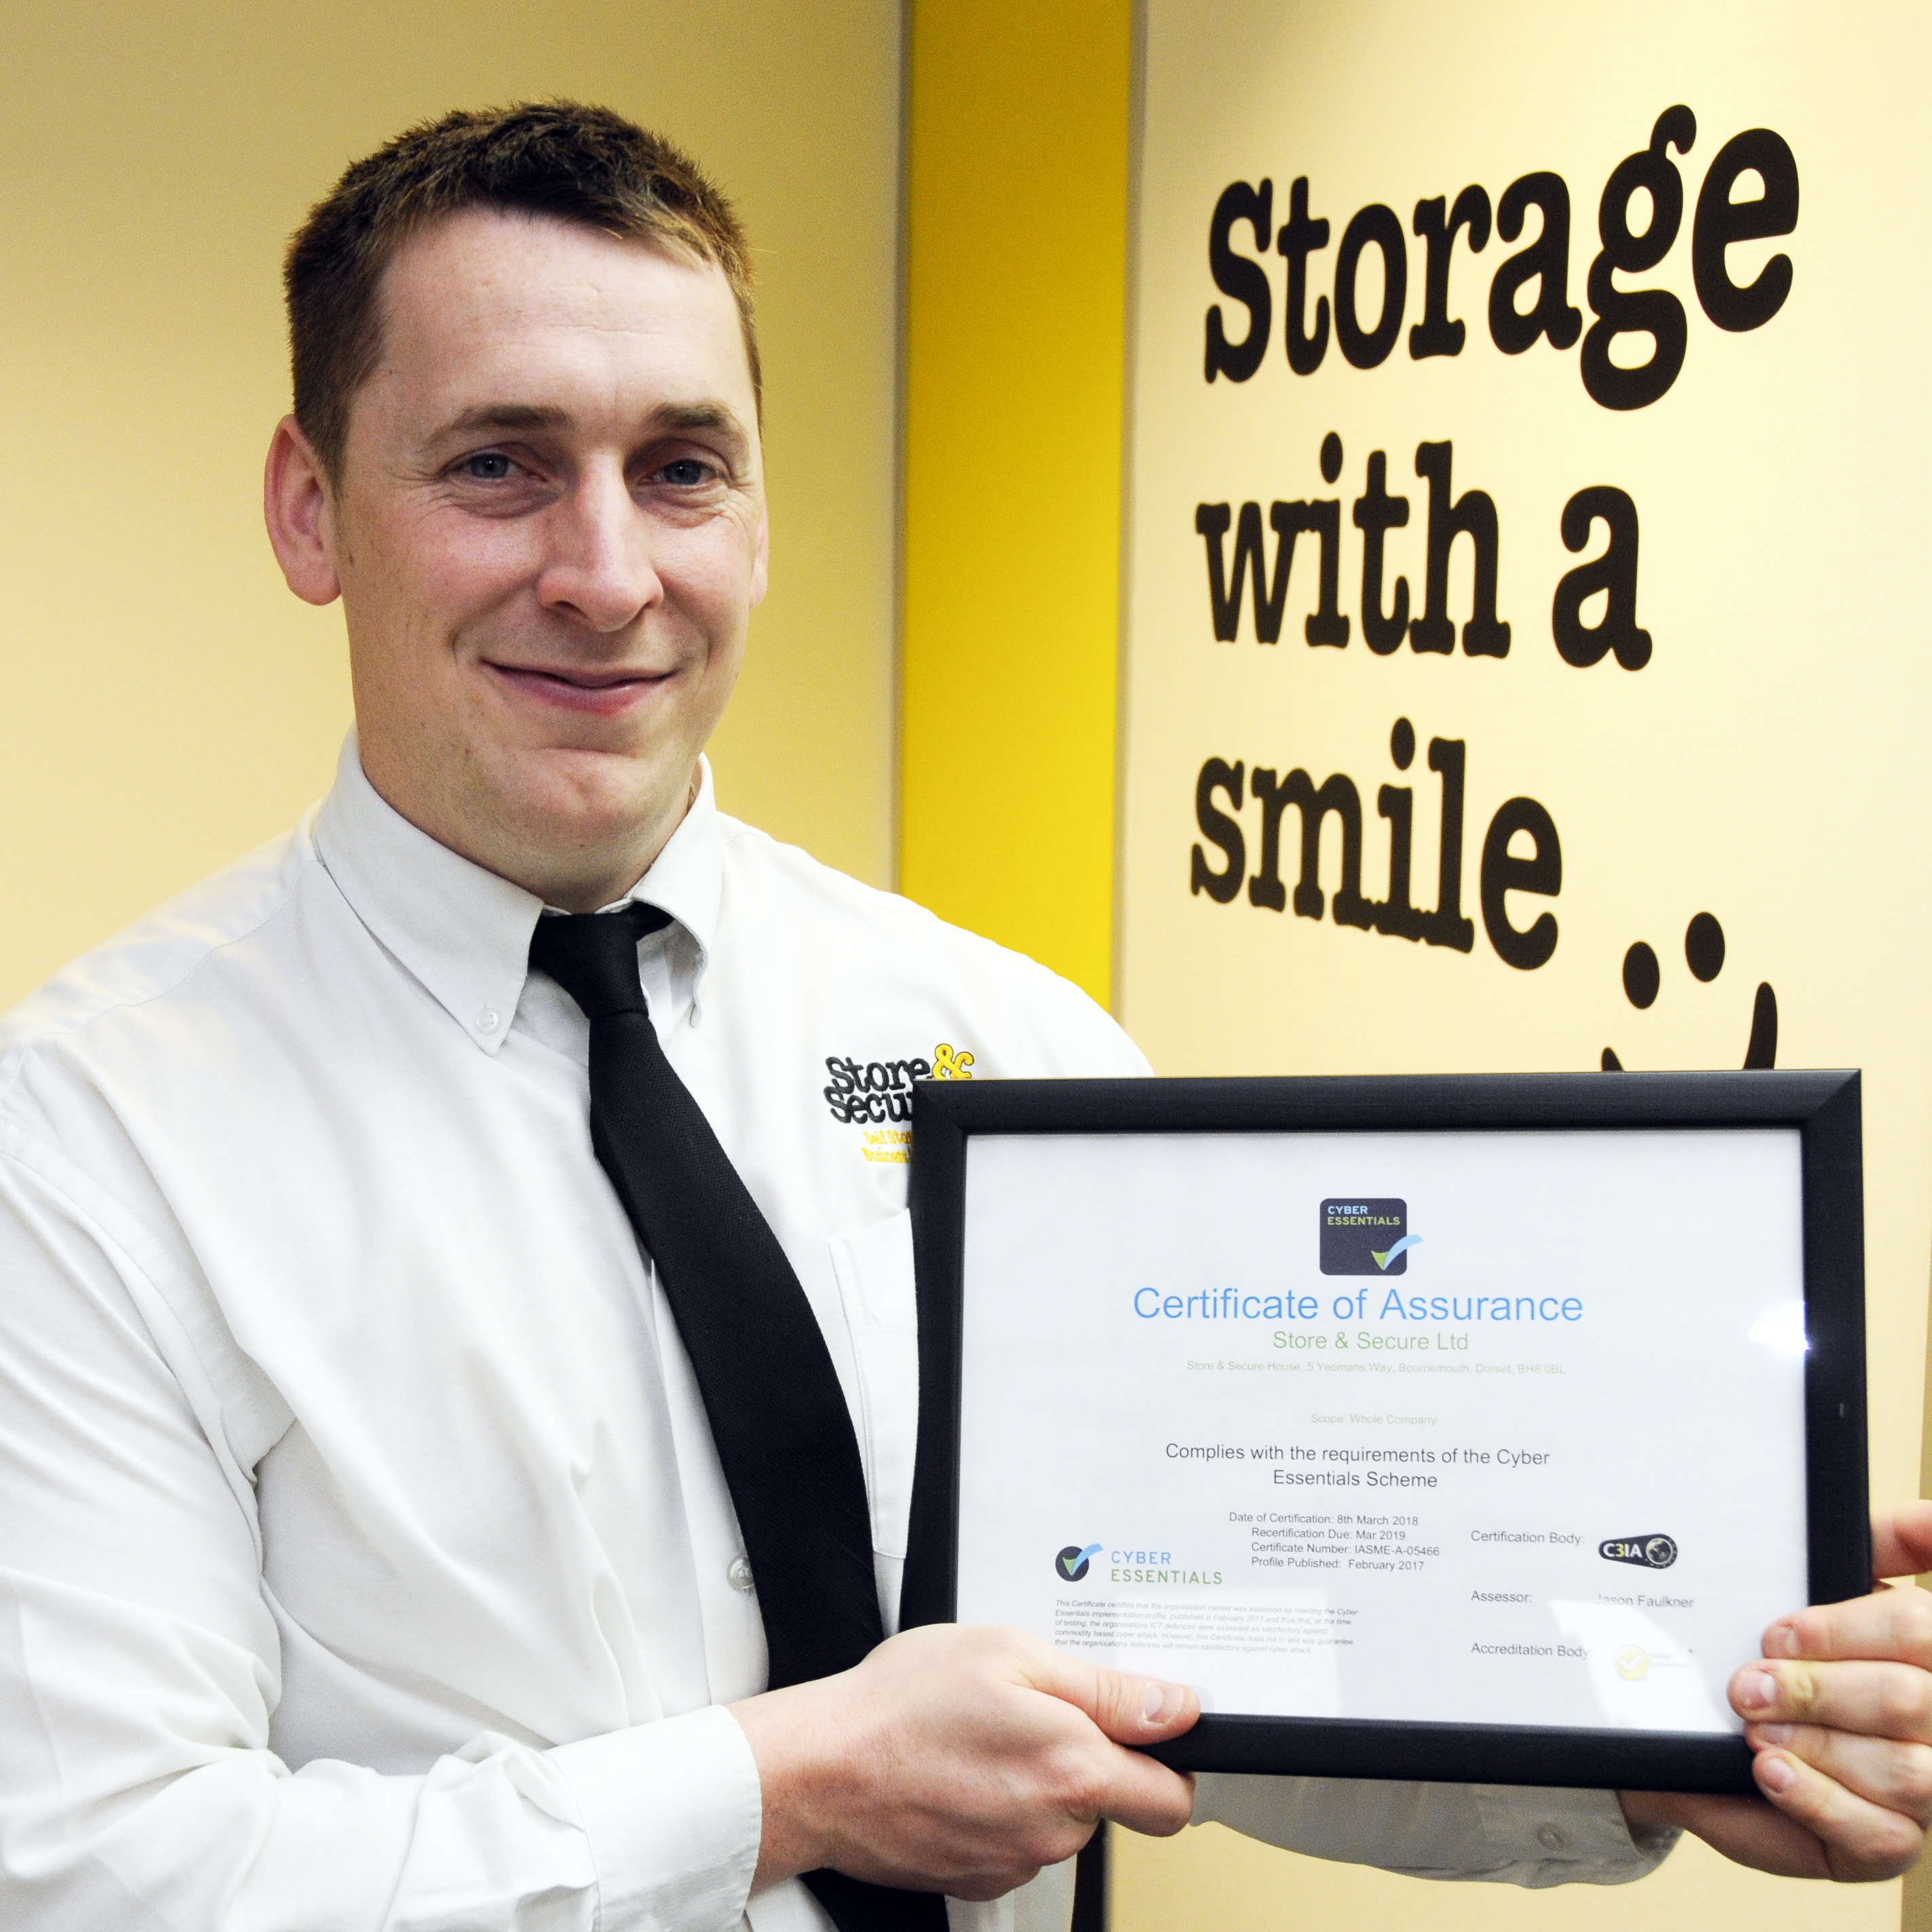 Colin Morris, Facilities Manager, Store & Secure